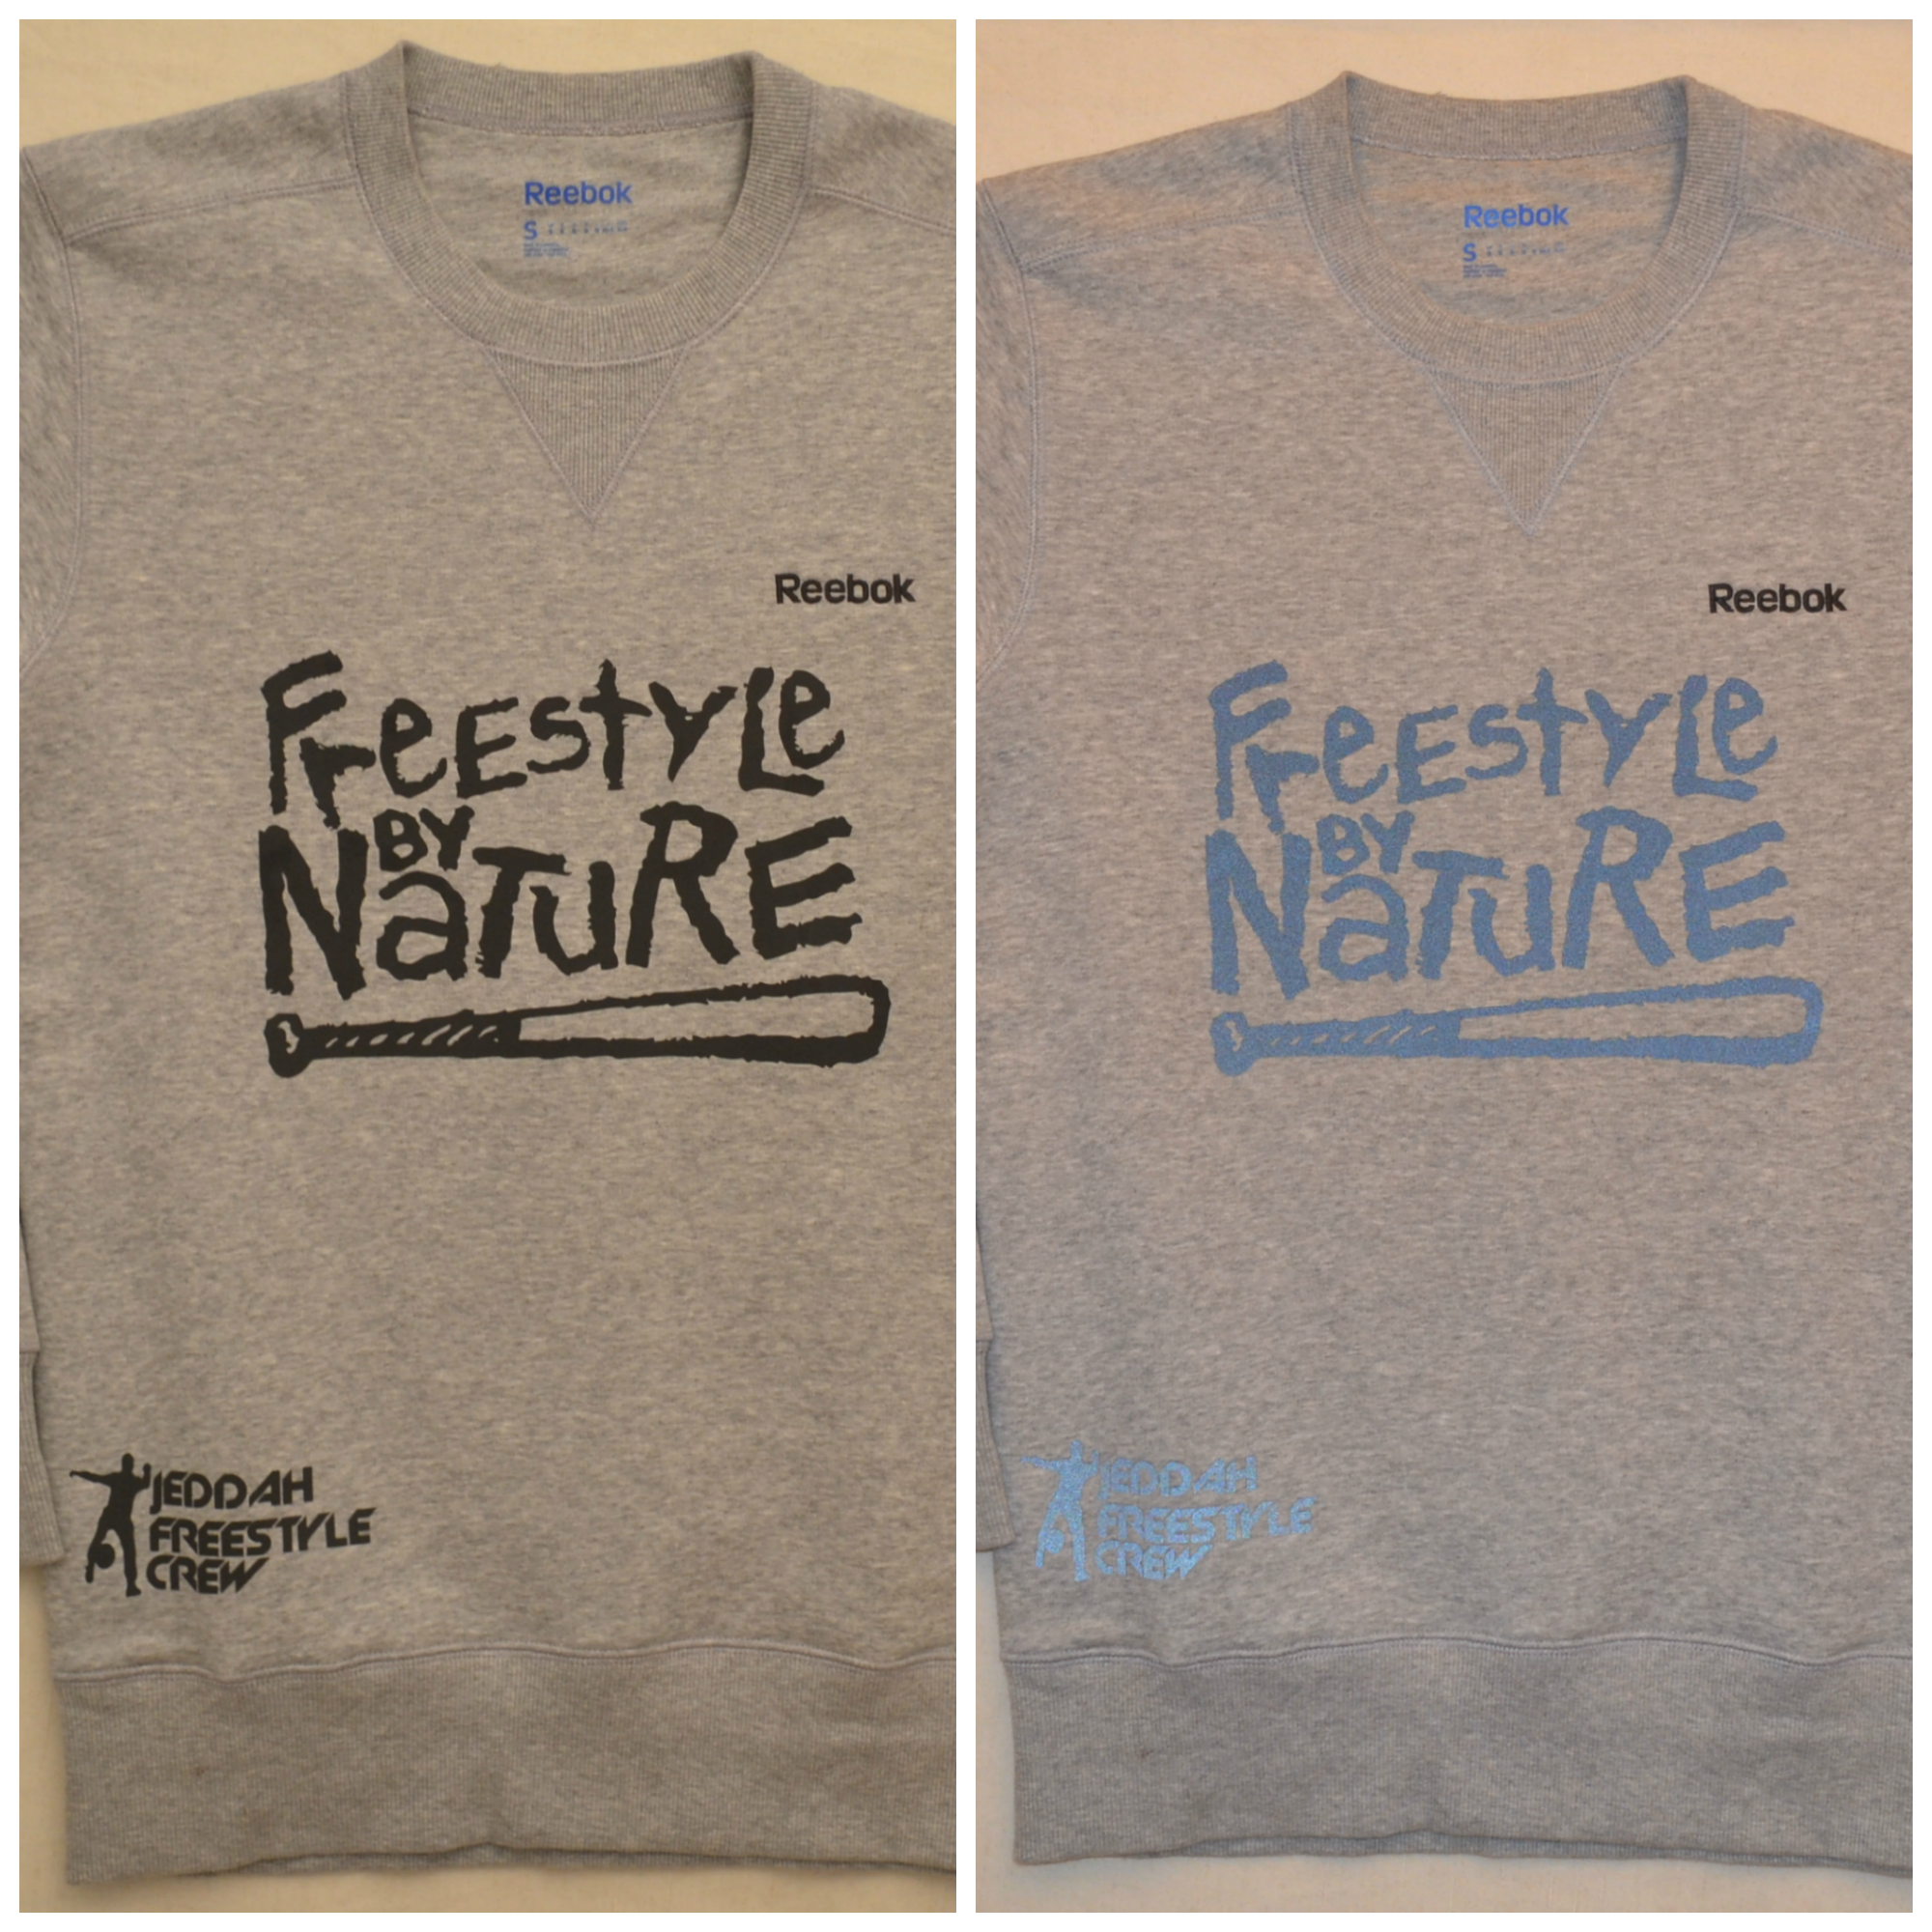 freestyle by nature jeddah freestyle crew.png